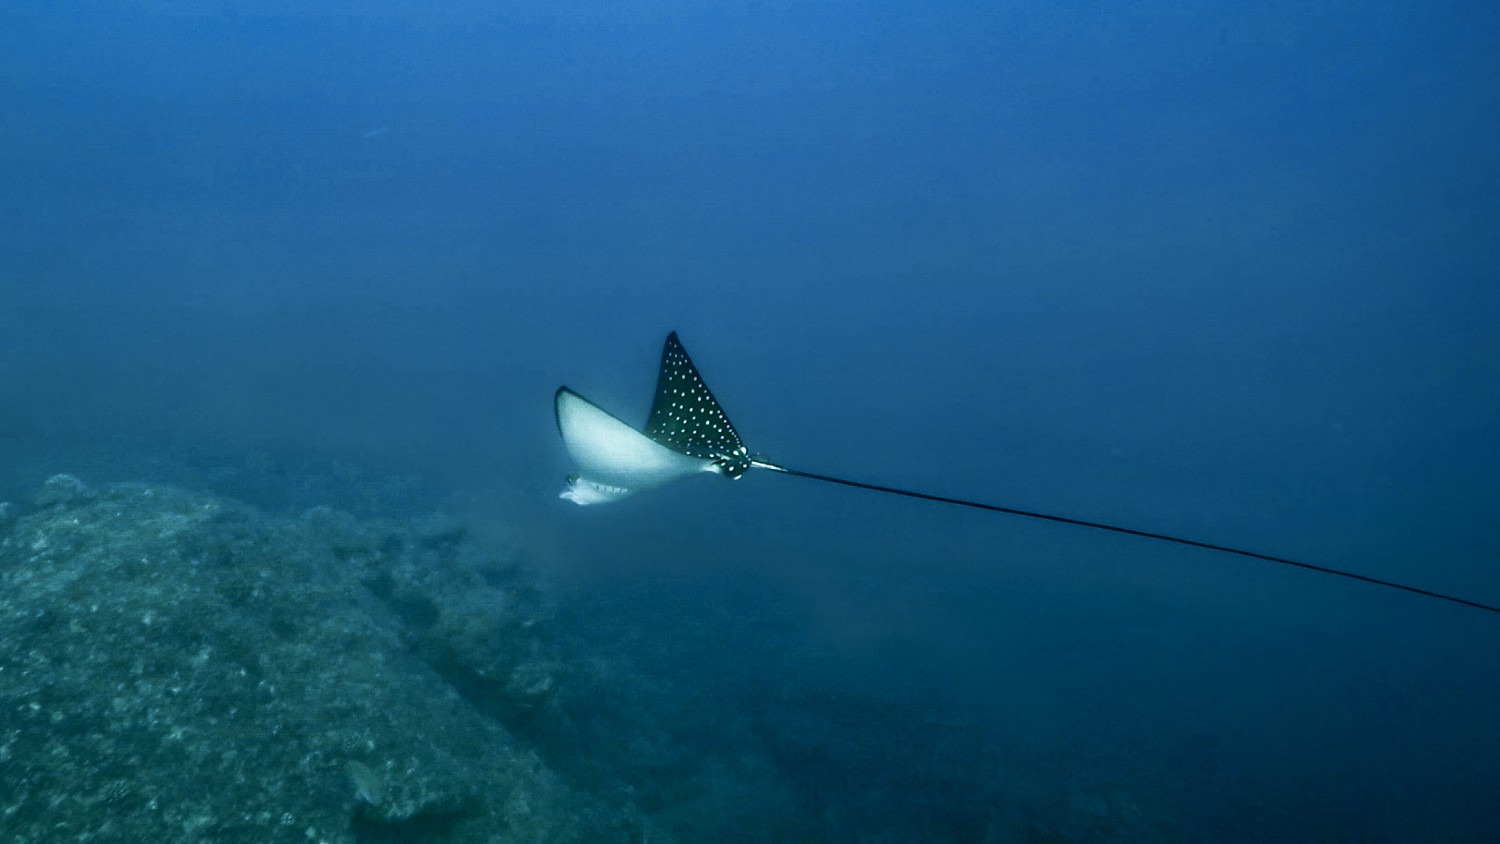 A manta ray in the sea of the Surin Islands